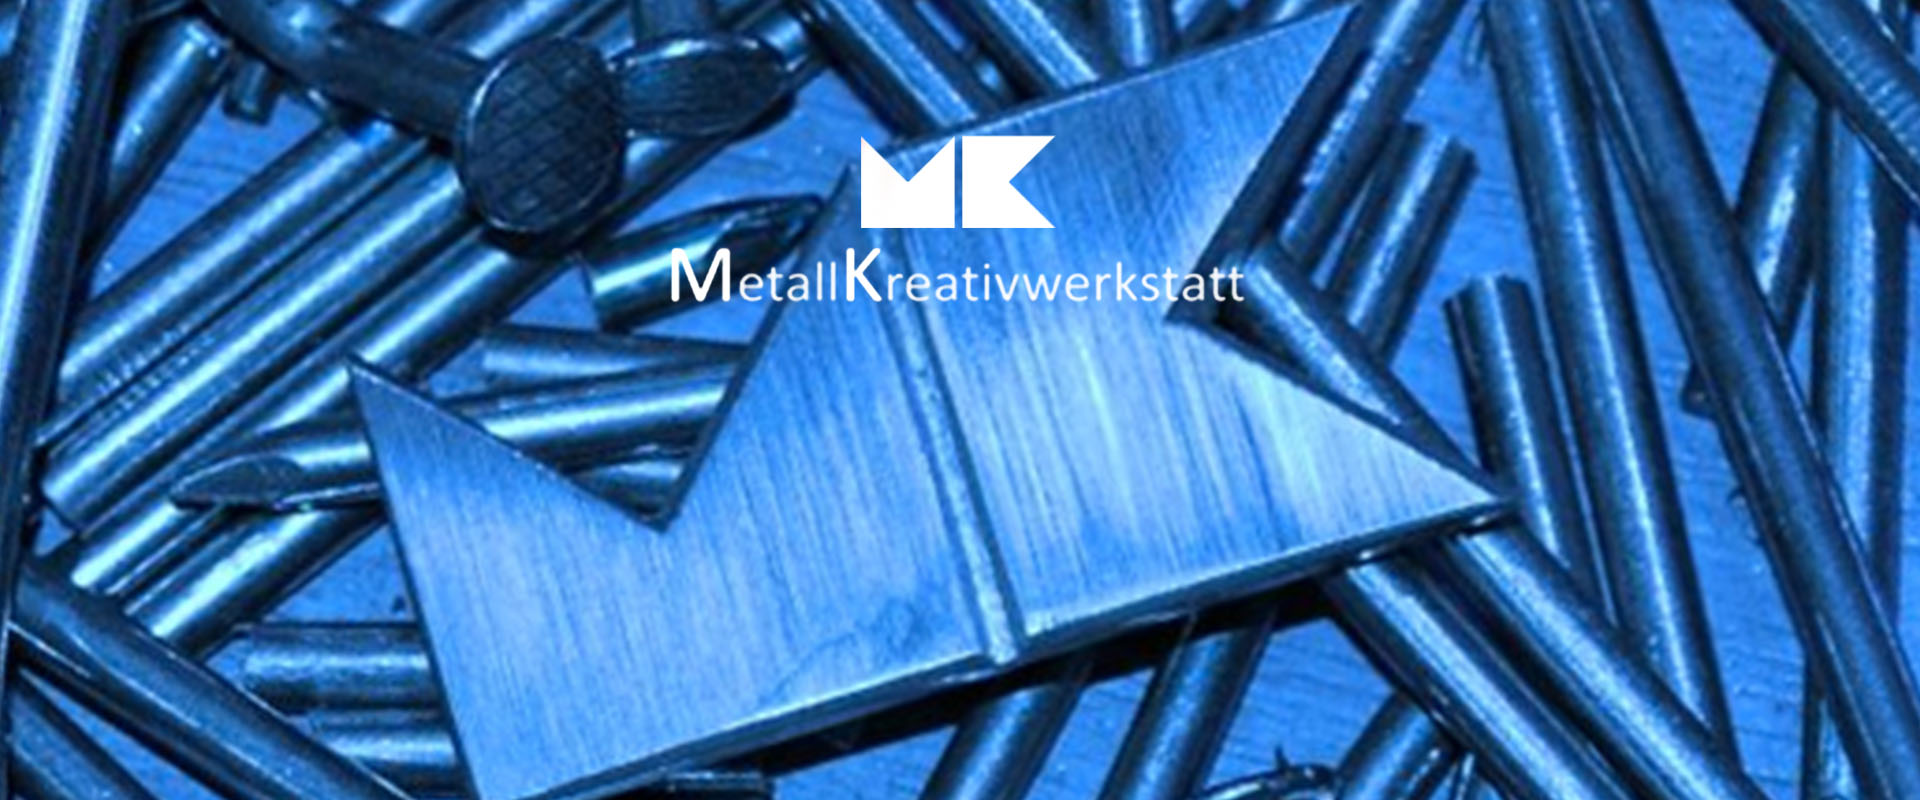 Dekoratives aus Metall